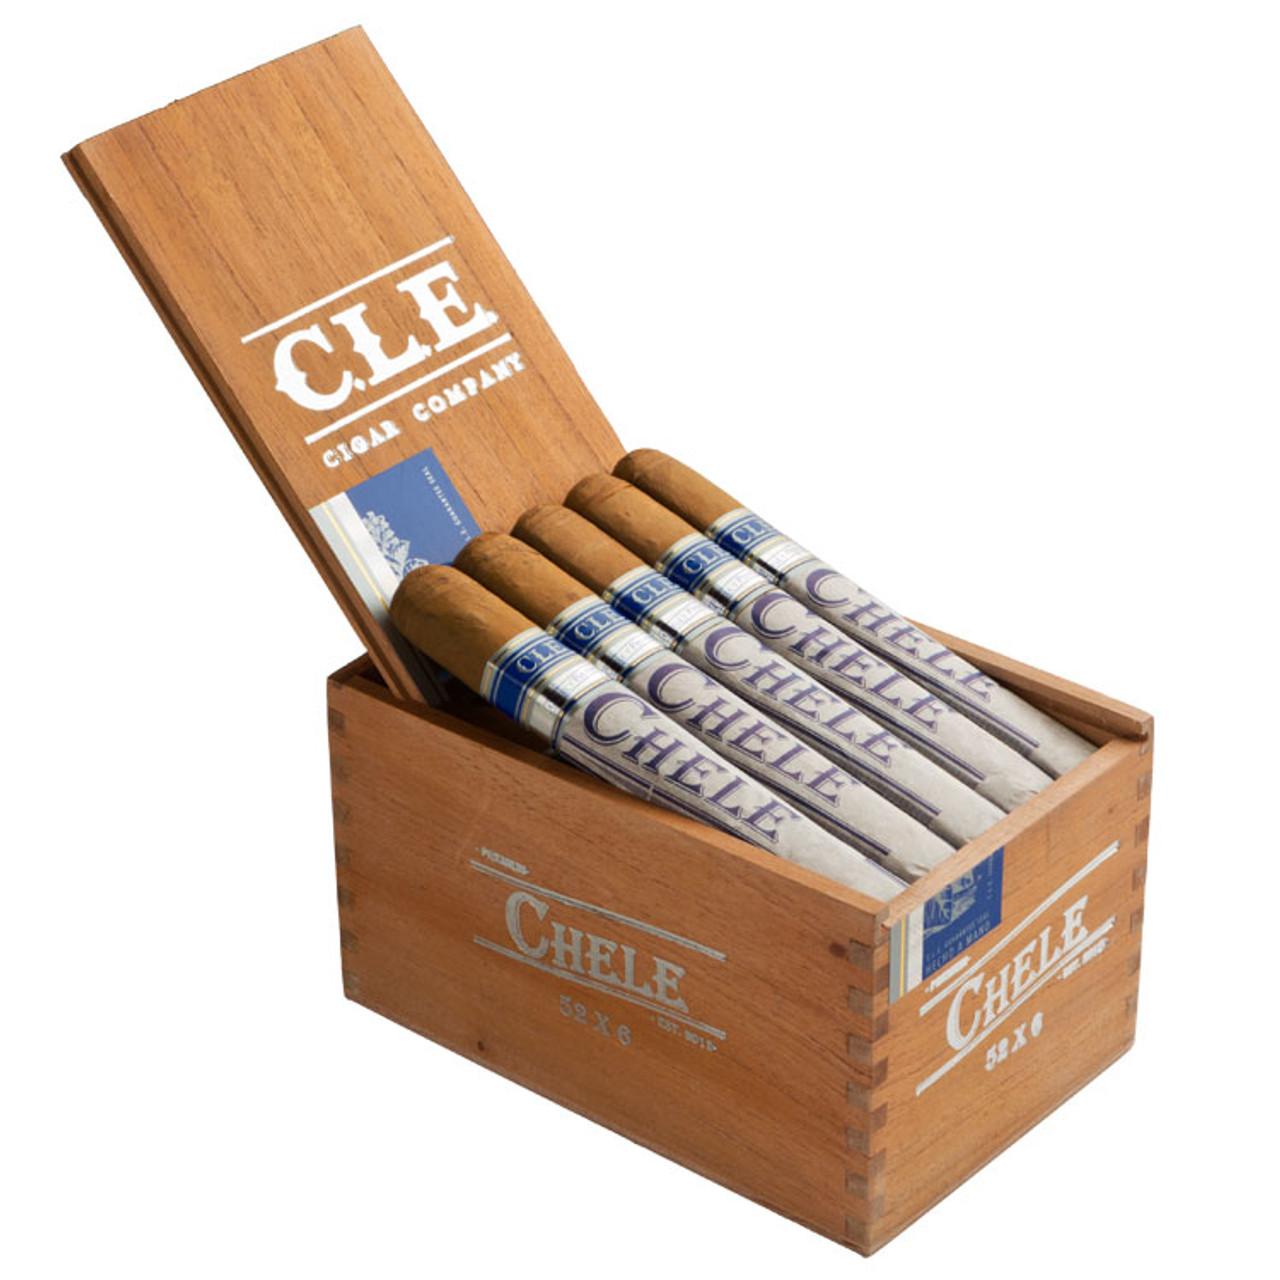 CLE Chele No. 550 Cigars - 5 x 50 (Box of 25)